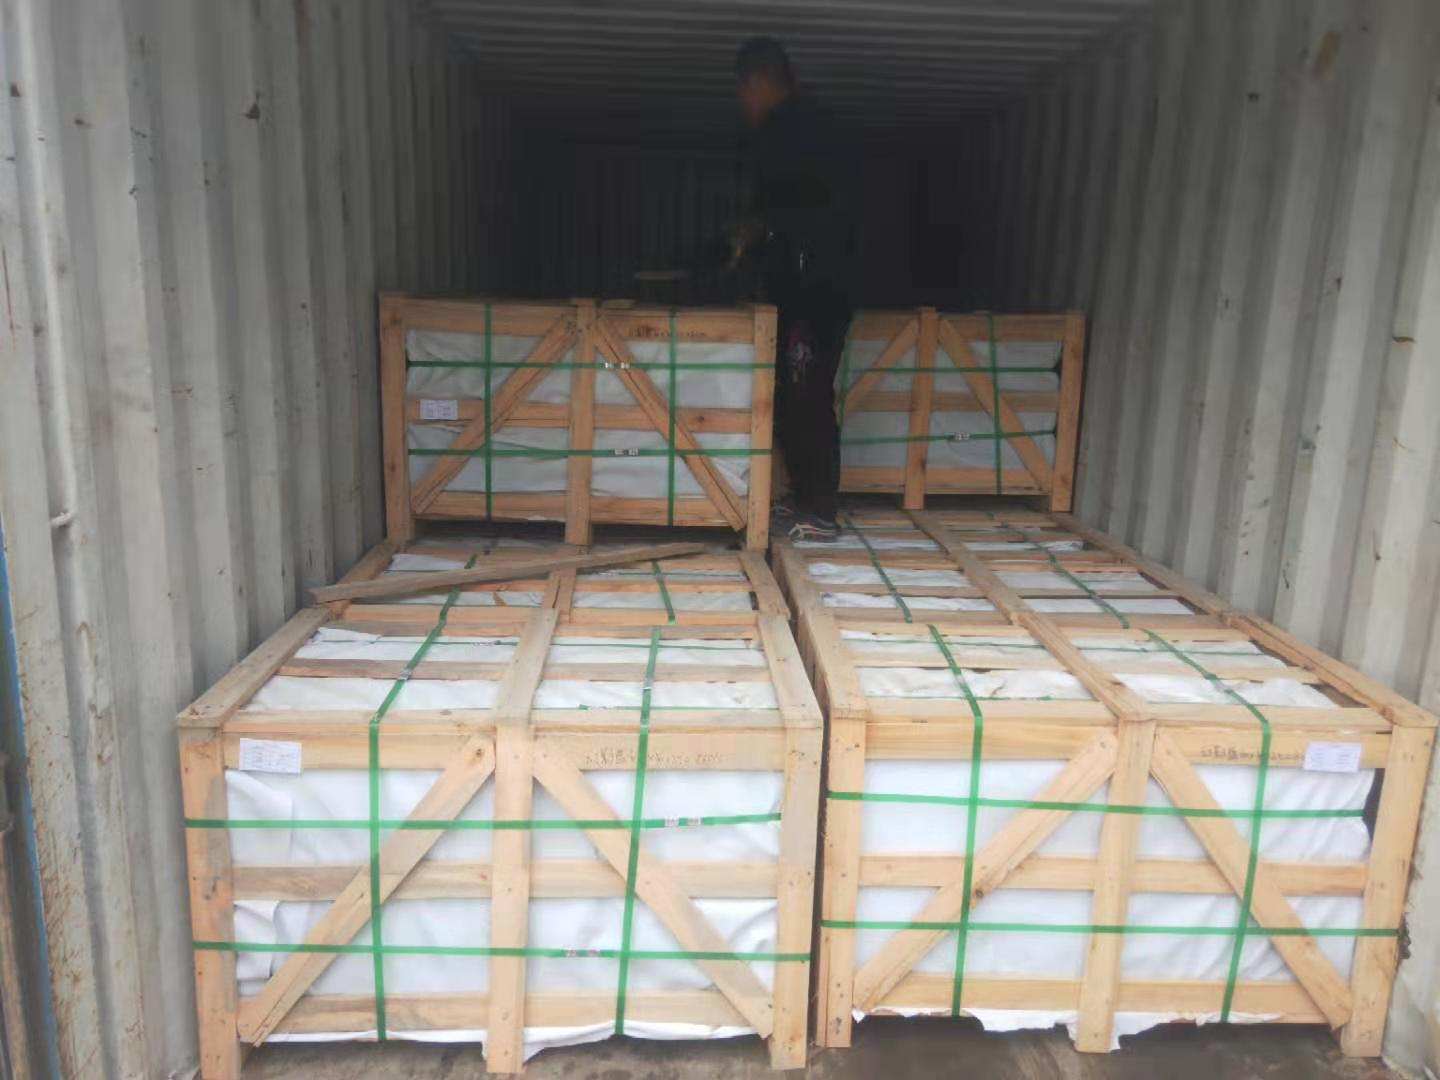 Polished Volga Blue tiles. 9 containers. Shipped. фото 61764c1470c0e